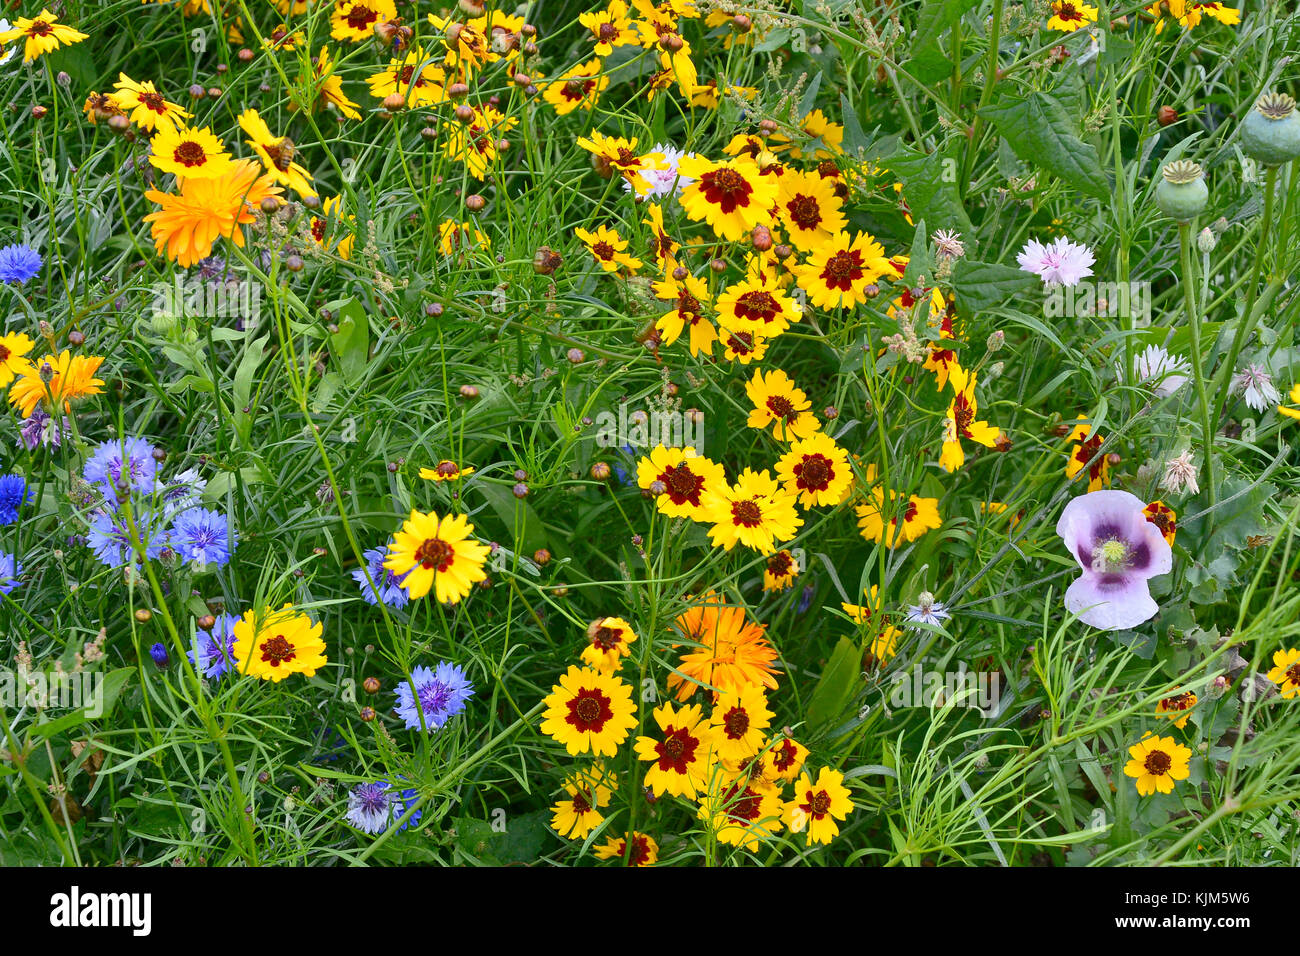 A golden and colourful naturaly planted flower meadow with Coreopsis , Cornflowers, Poppy heads and marigolds Stock Photo